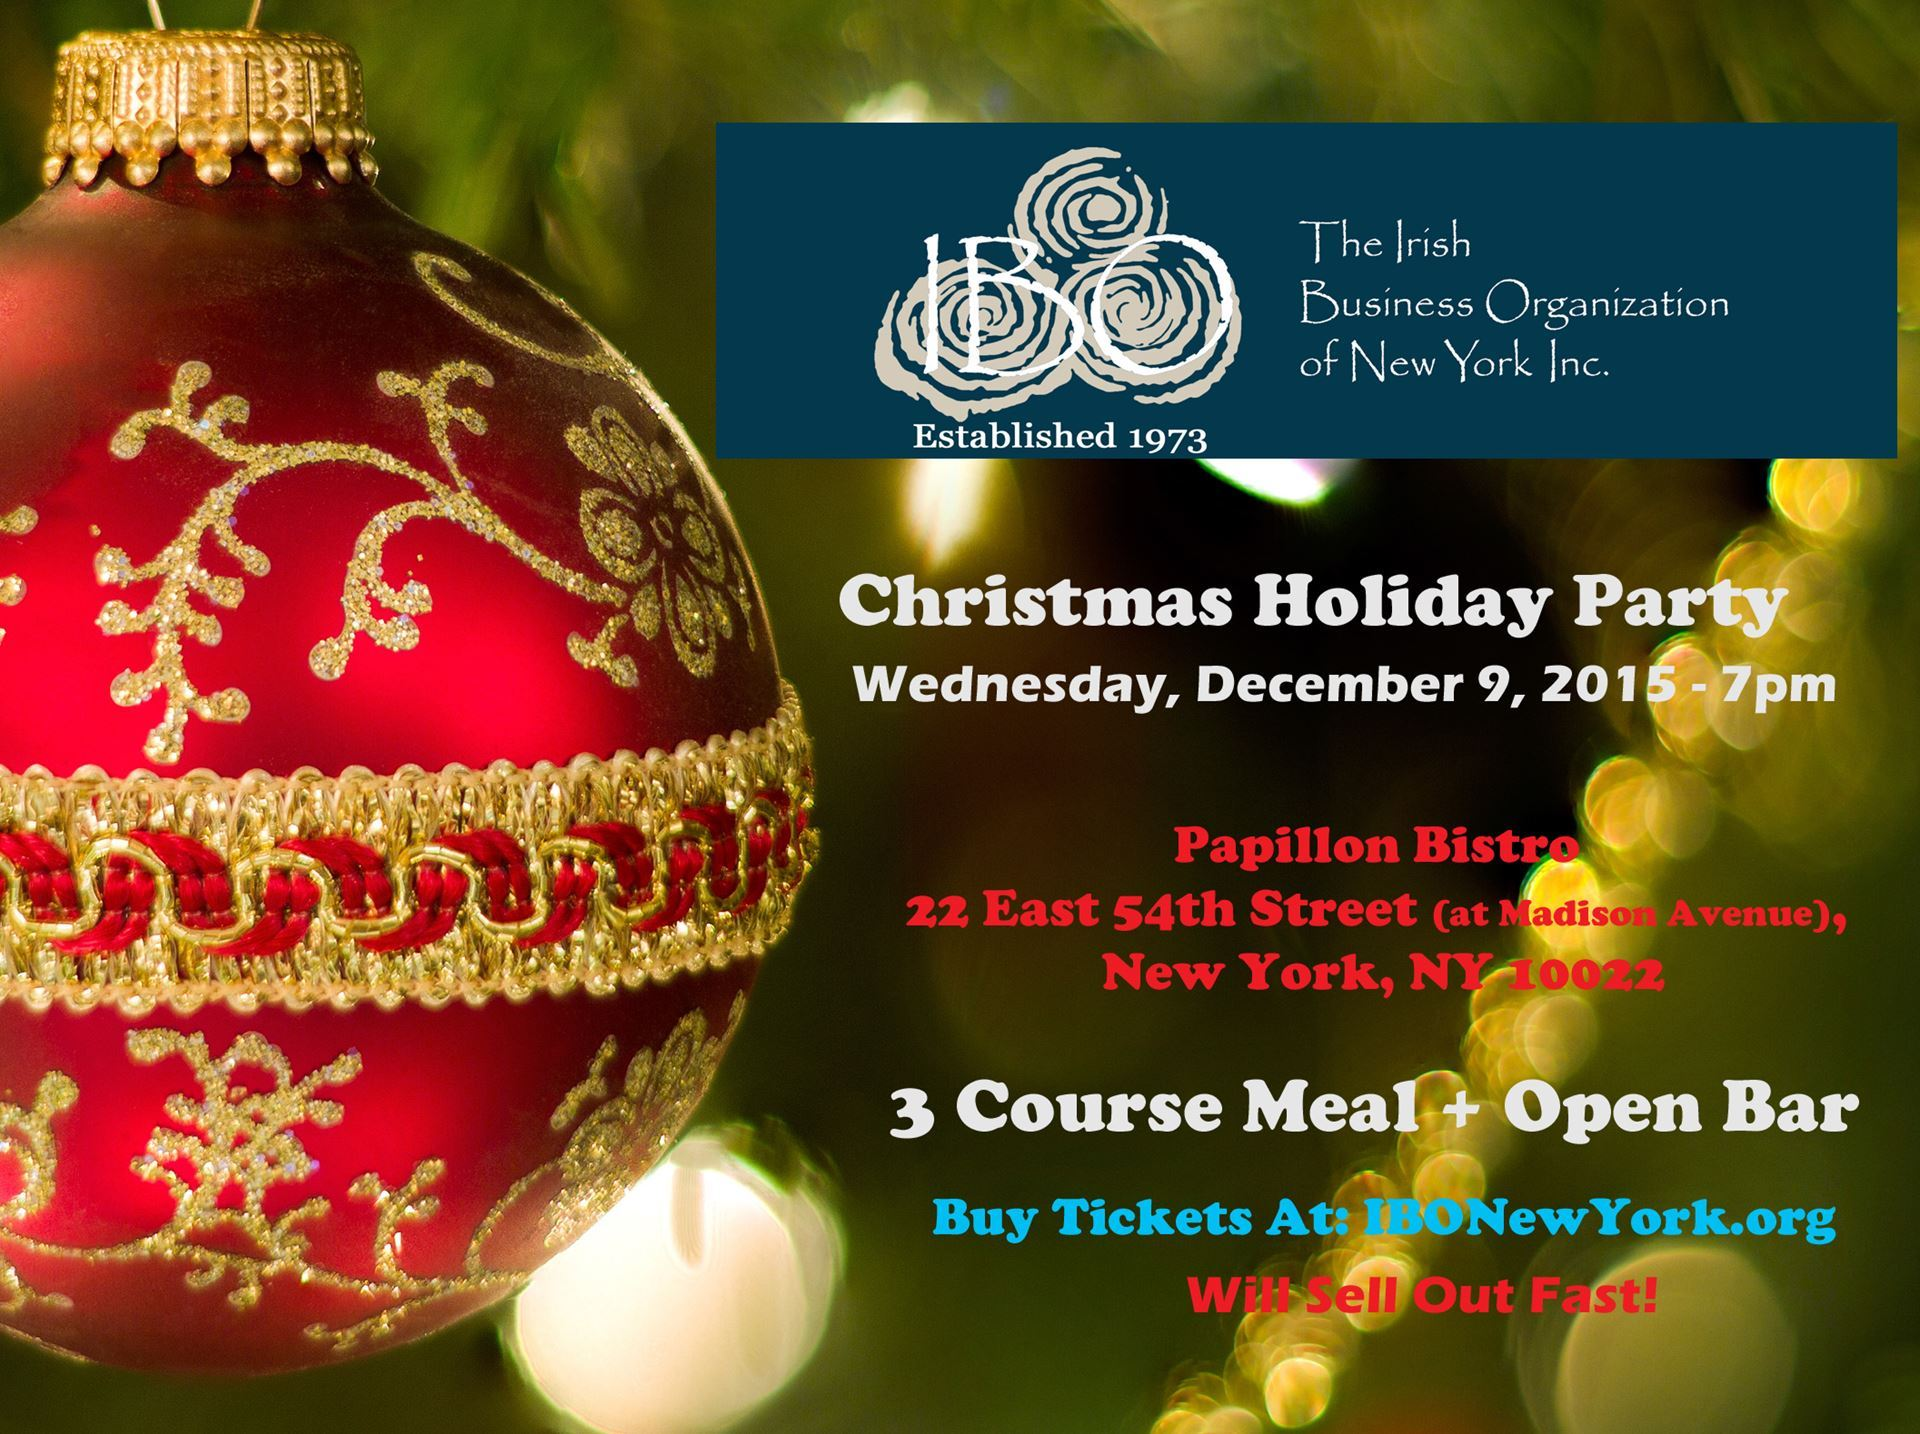 Ibo christmas party at papillon murphguide nyc bar guide ibo christmas party ibo member 85 non member 95 tickets includes 3 course meal open bar craic agus ceol 7pm at papillon 22 e 54th st bet kristyandbryce Images